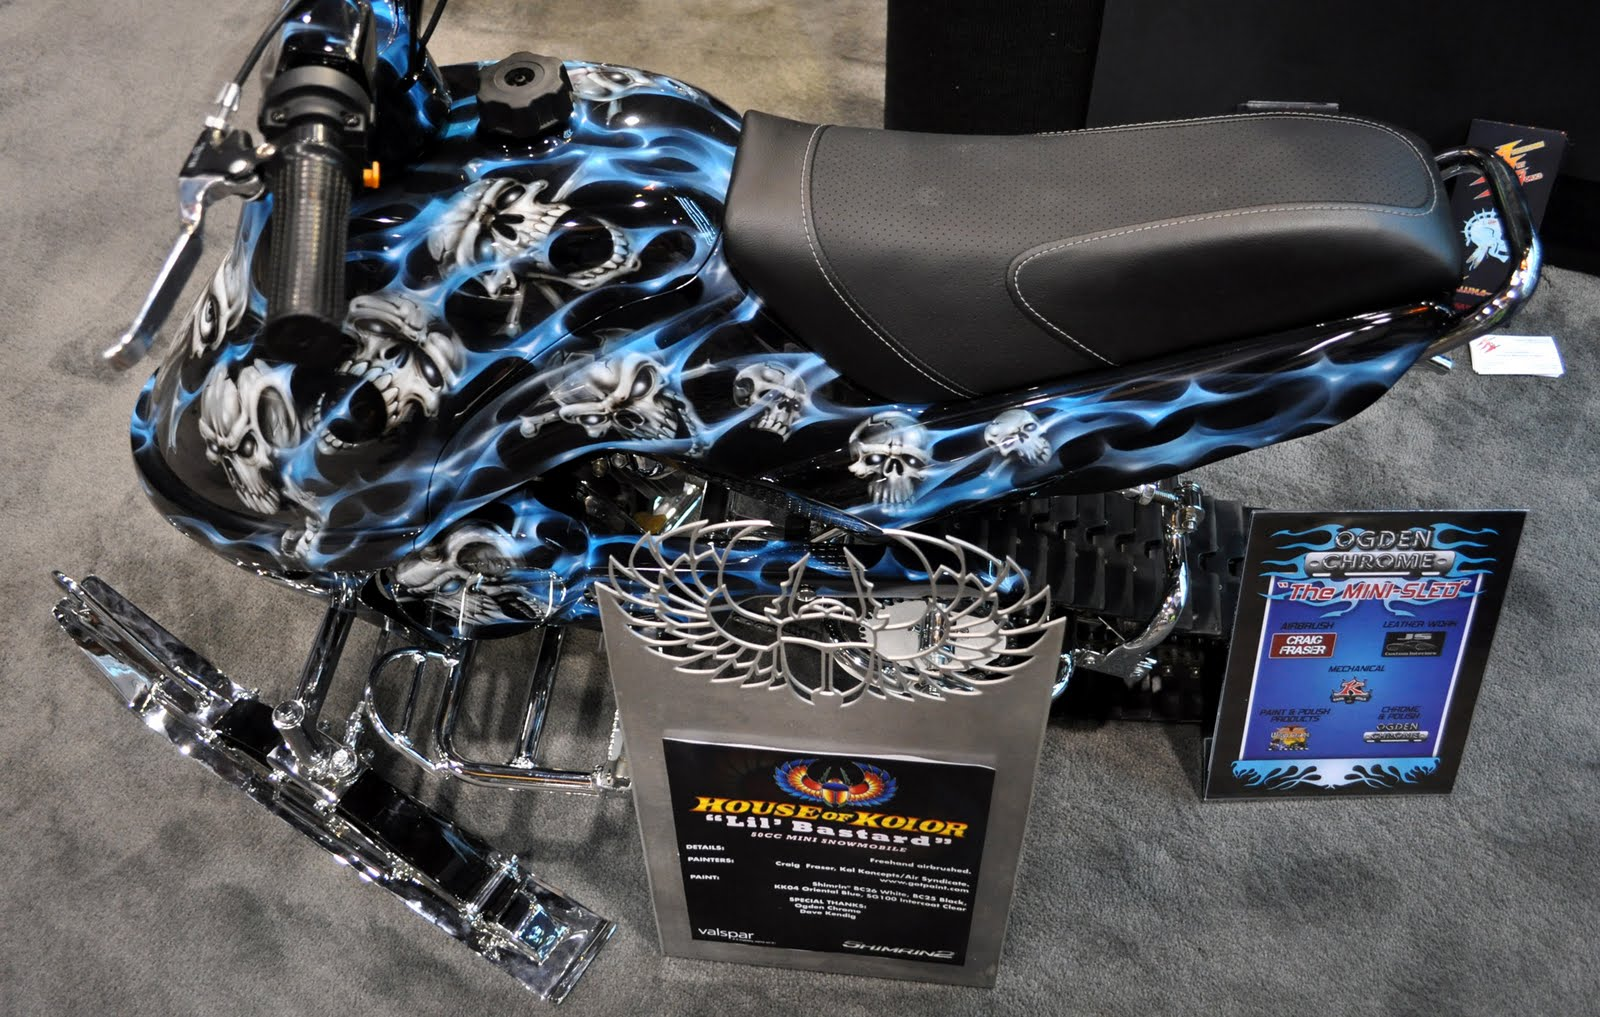 Just A Car Guy: House Of Kolor airbrushed art is something